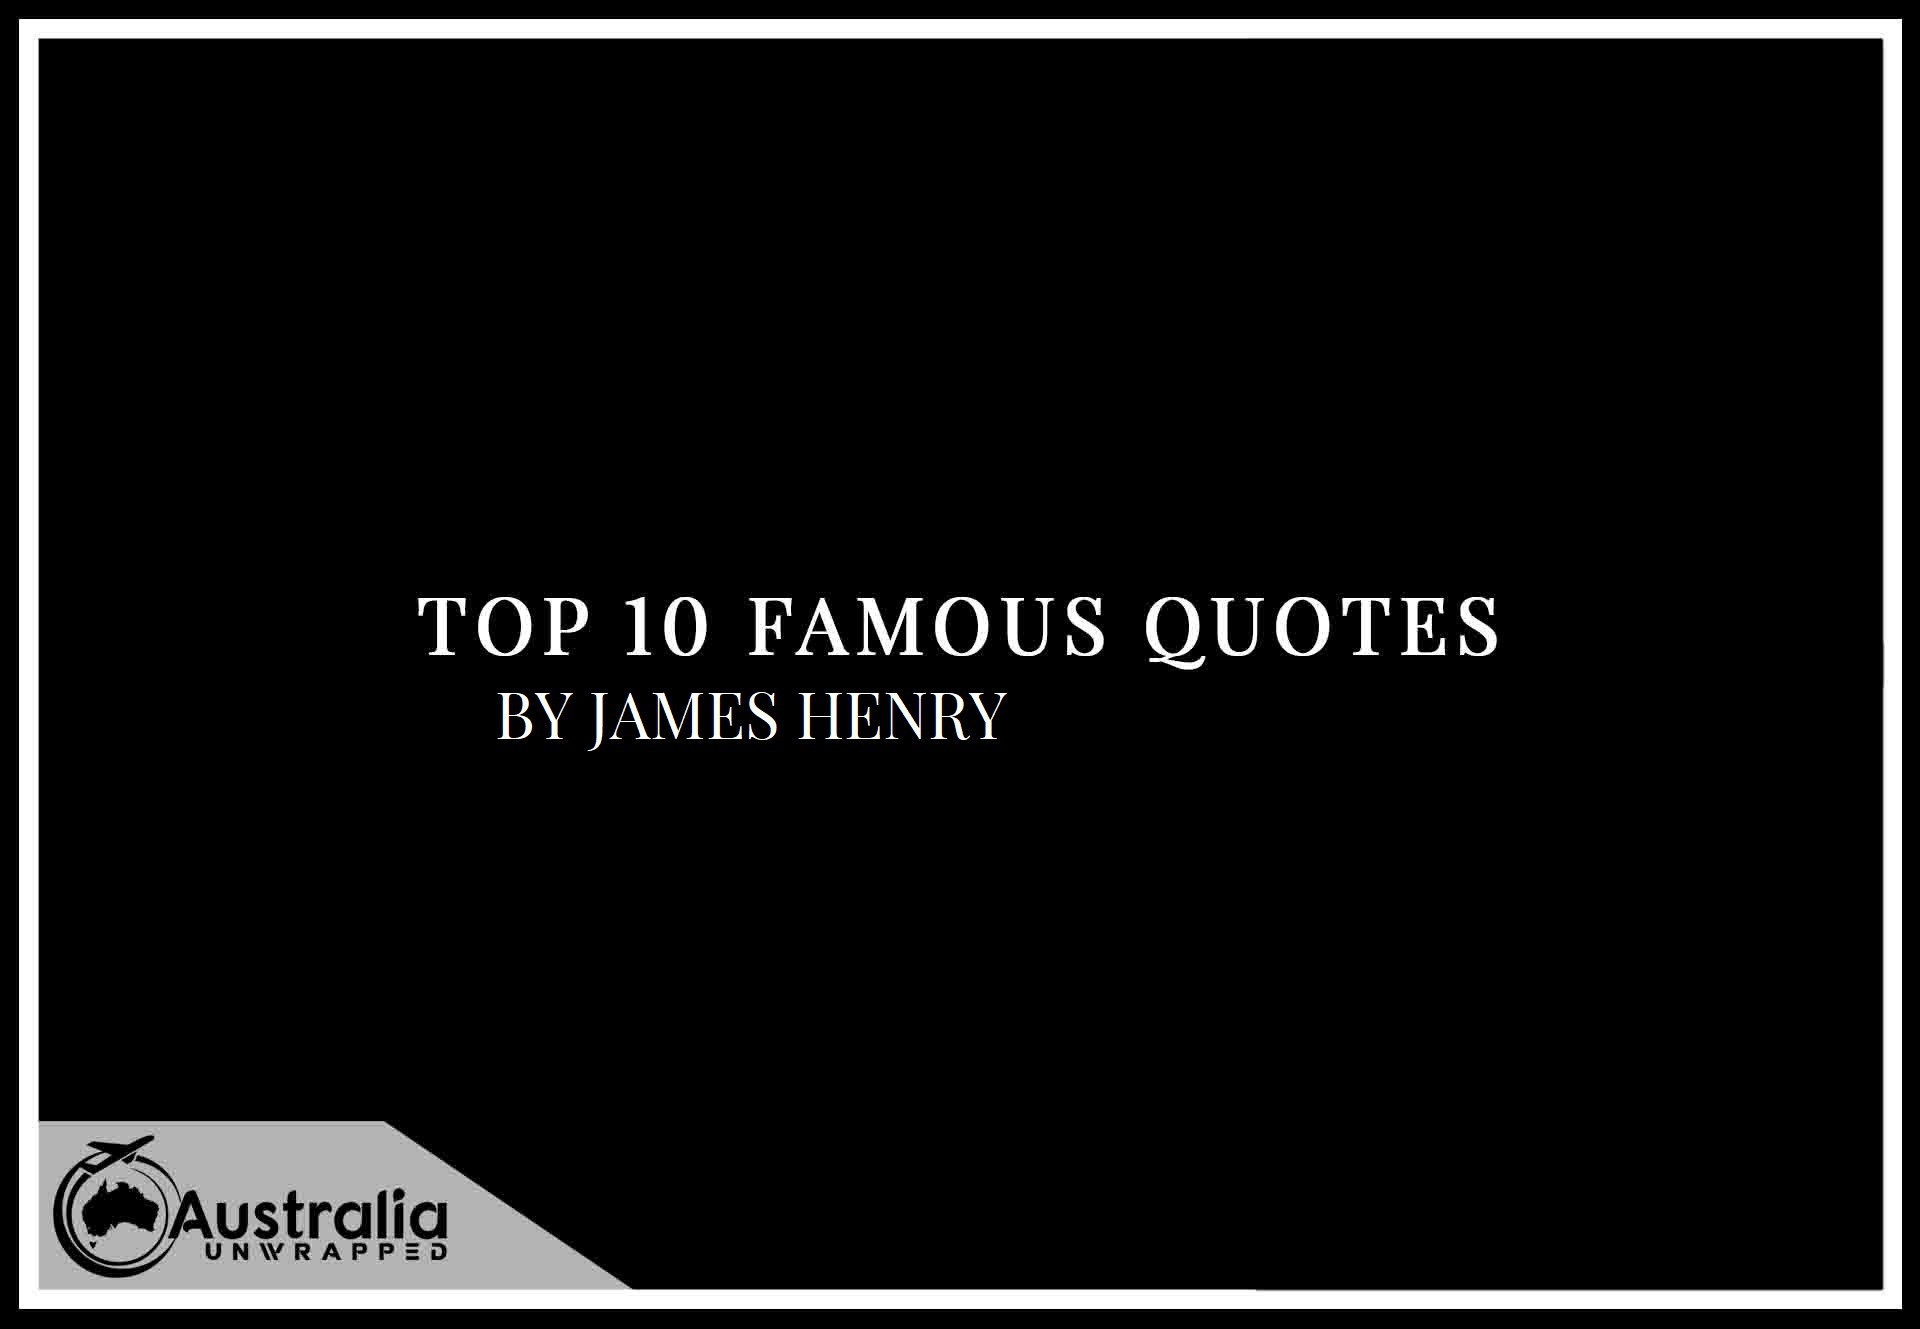 Top 10 Famous Quotes by Author Henry James